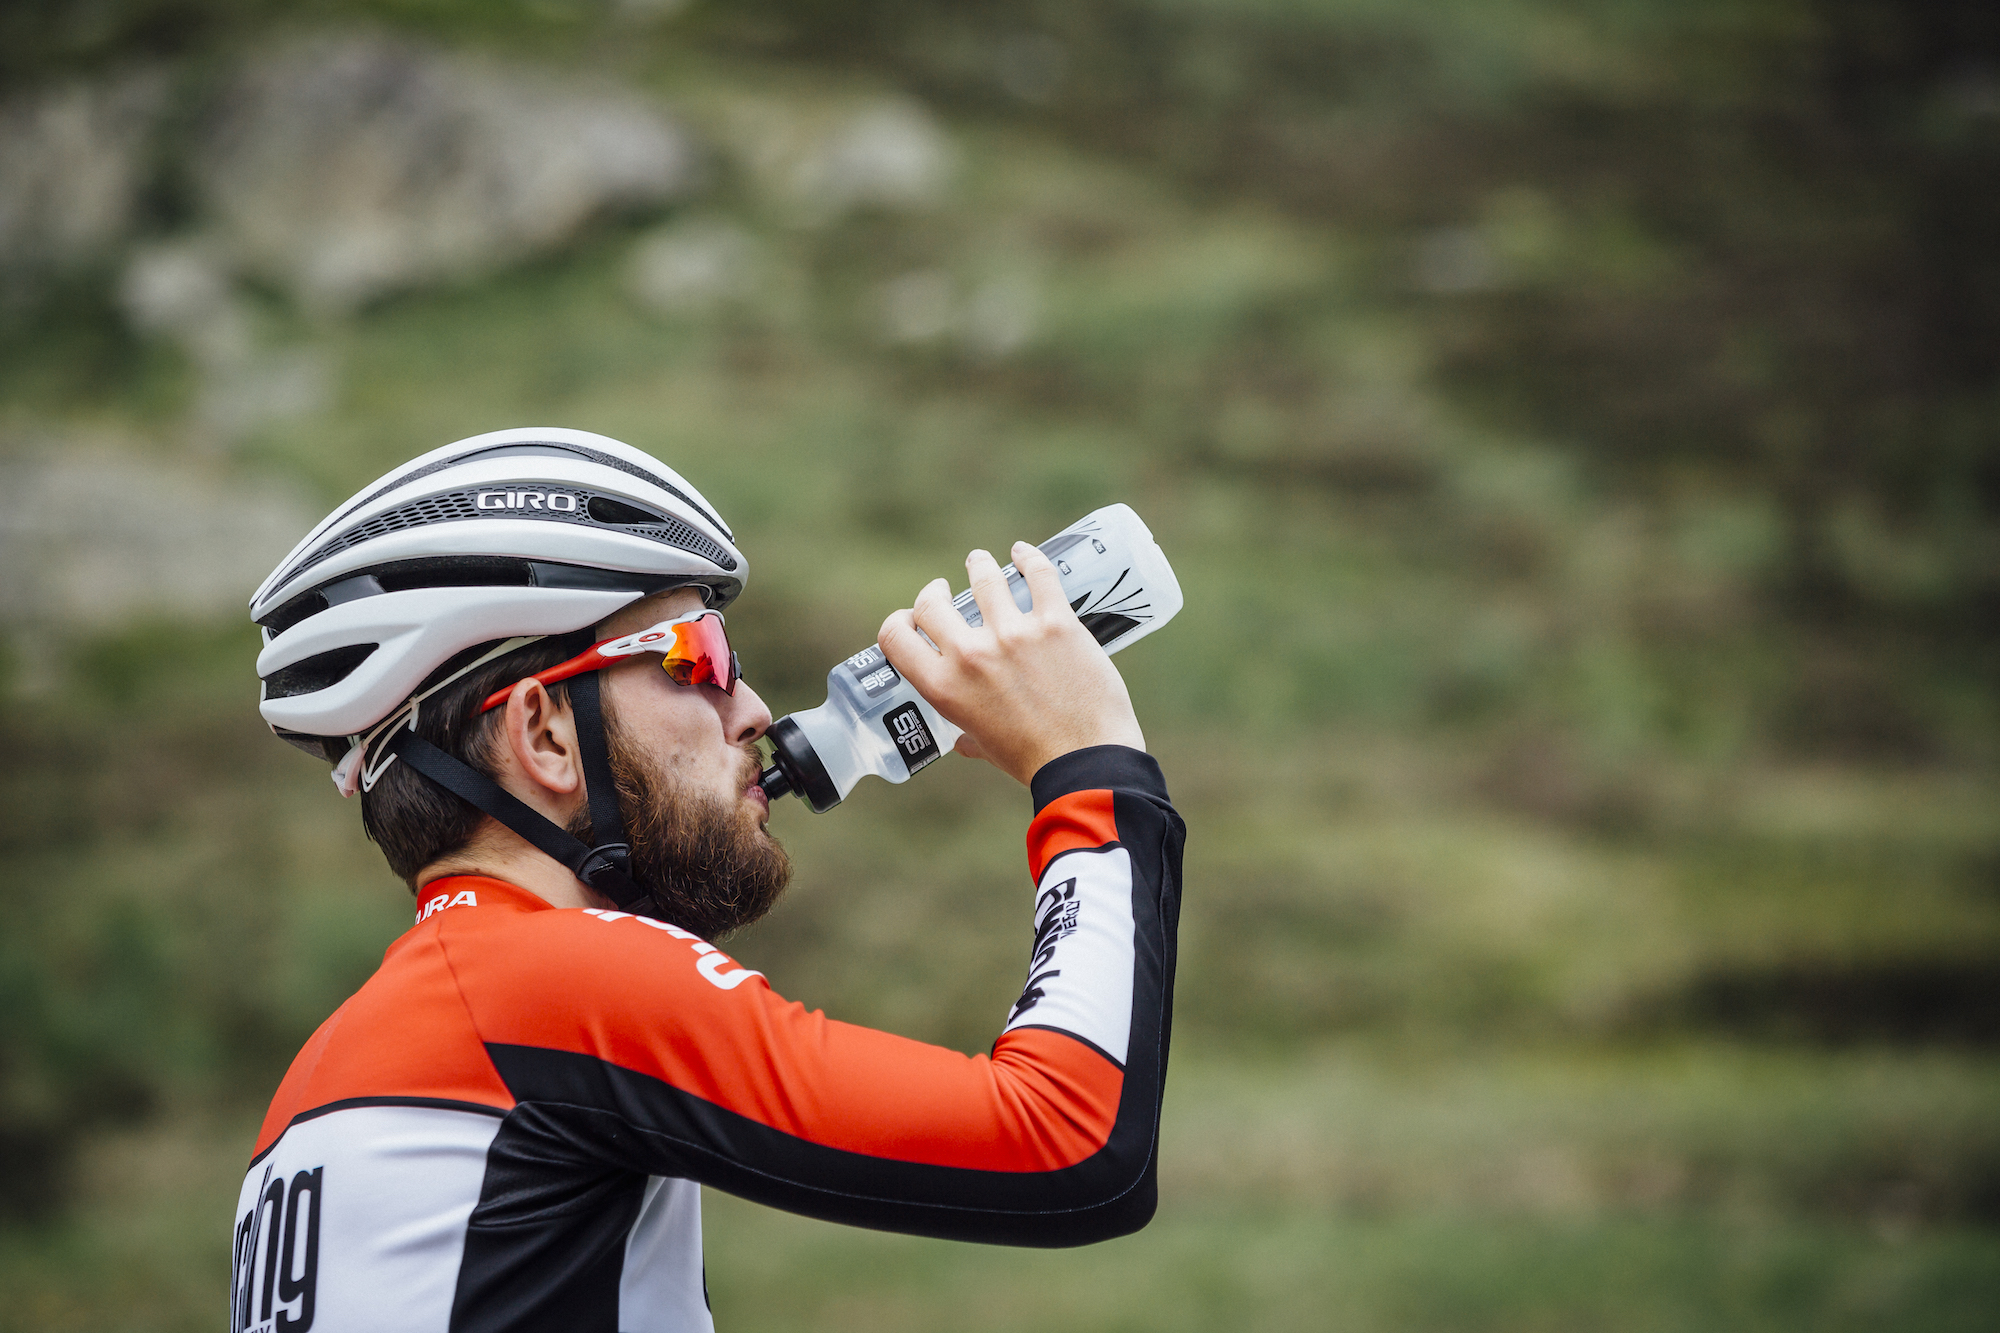 Tips for effective rest and recovery after cycling - Cycling